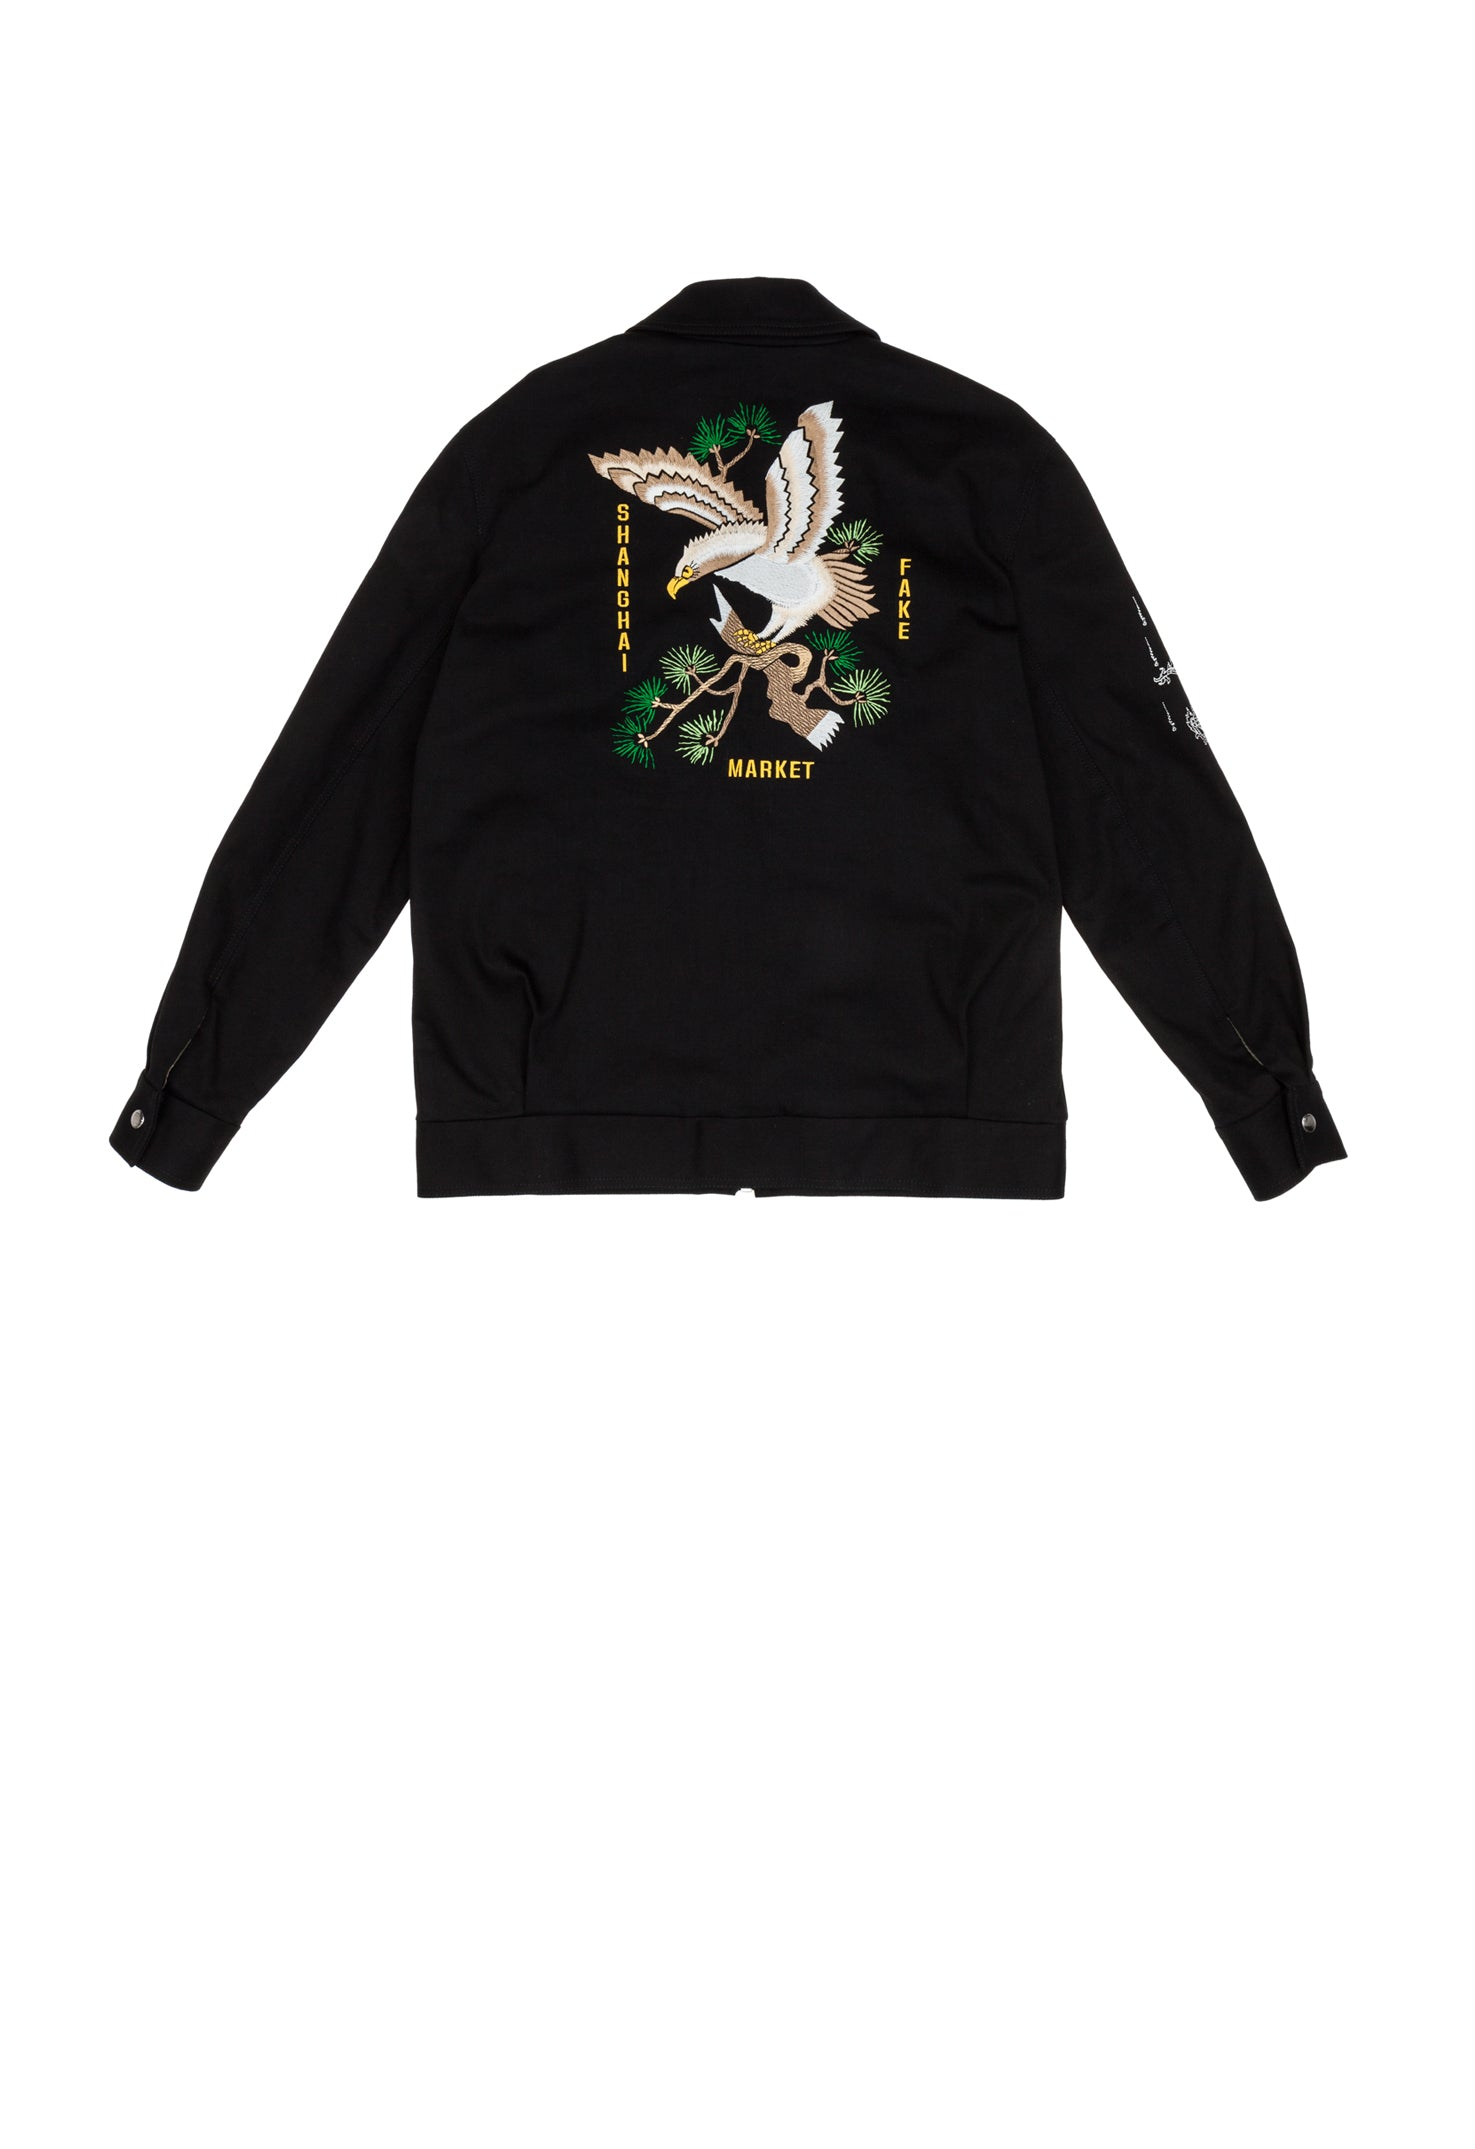 Eagle Fake market jacket